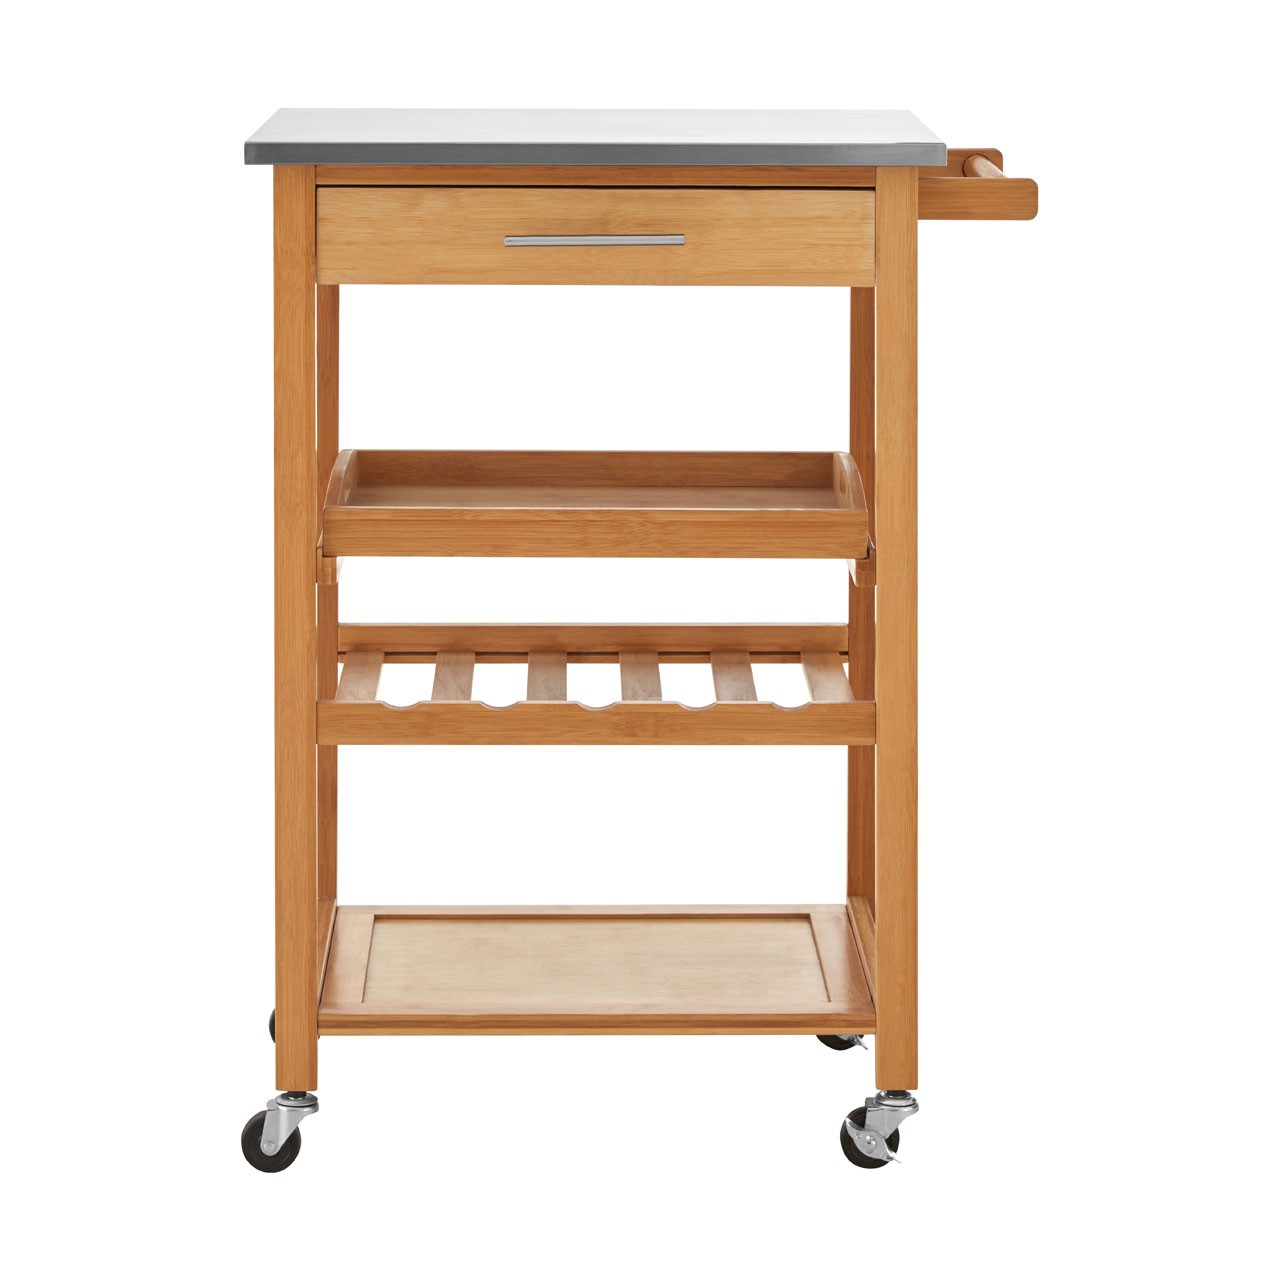 bamboo kitchen trolley boasts multiple tiers of shelving